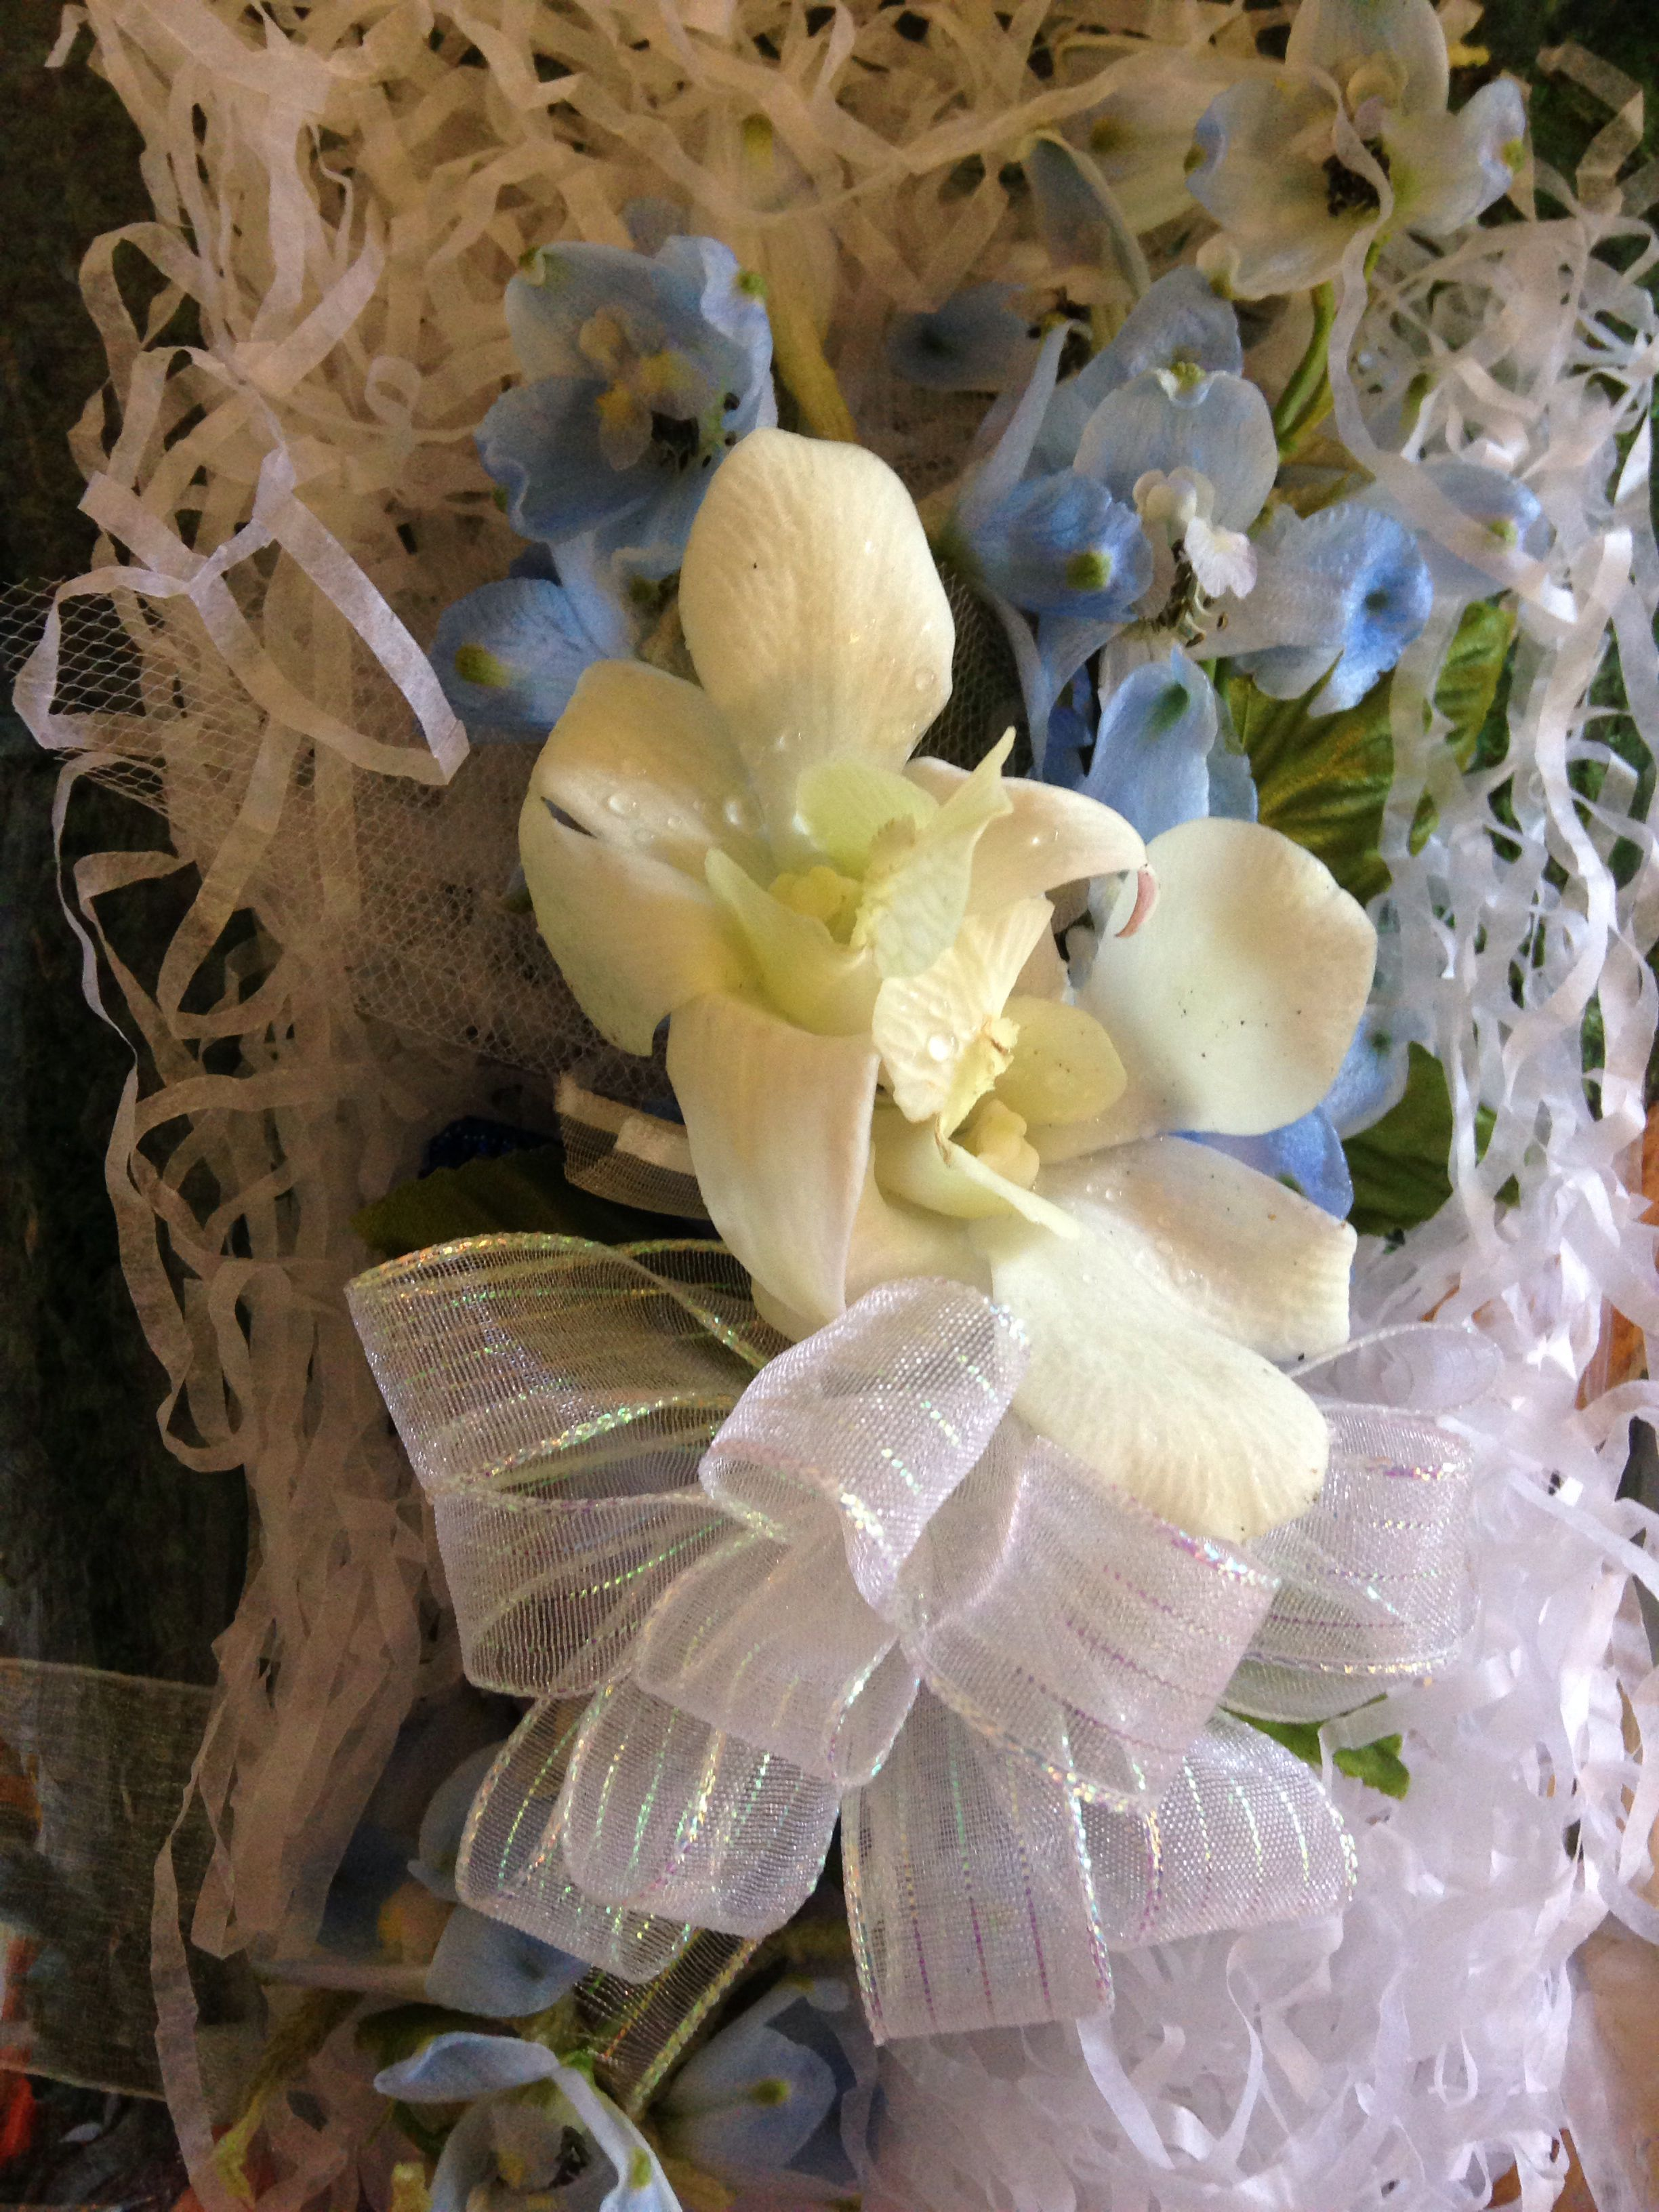 Pin by Lund Floral on Homecoming/Prom | Plants, Homecoming ...